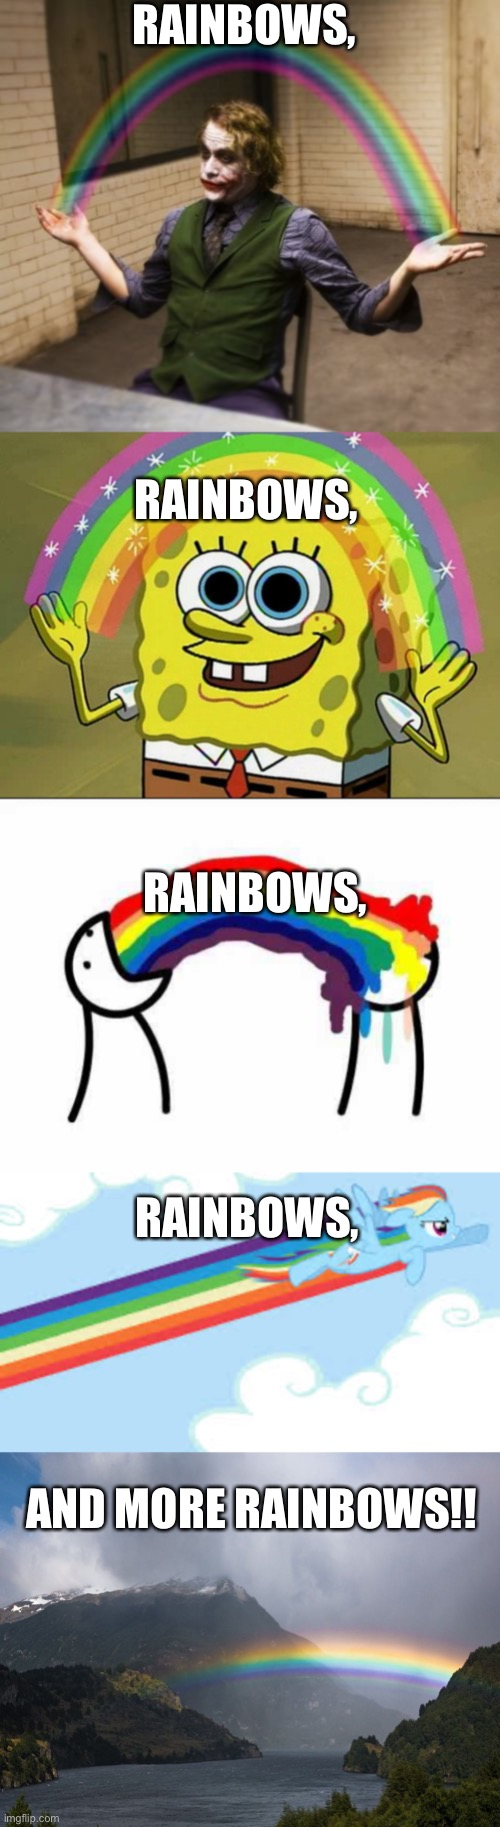 A bunch of RAINBOWS!! |  RAINBOWS, RAINBOWS, RAINBOWS, RAINBOWS, AND MORE RAINBOWS!! | image tagged in memes,imagination spongebob,joker rainbow hands,rainbow,rainbow dash,asdf movie | made w/ Imgflip meme maker